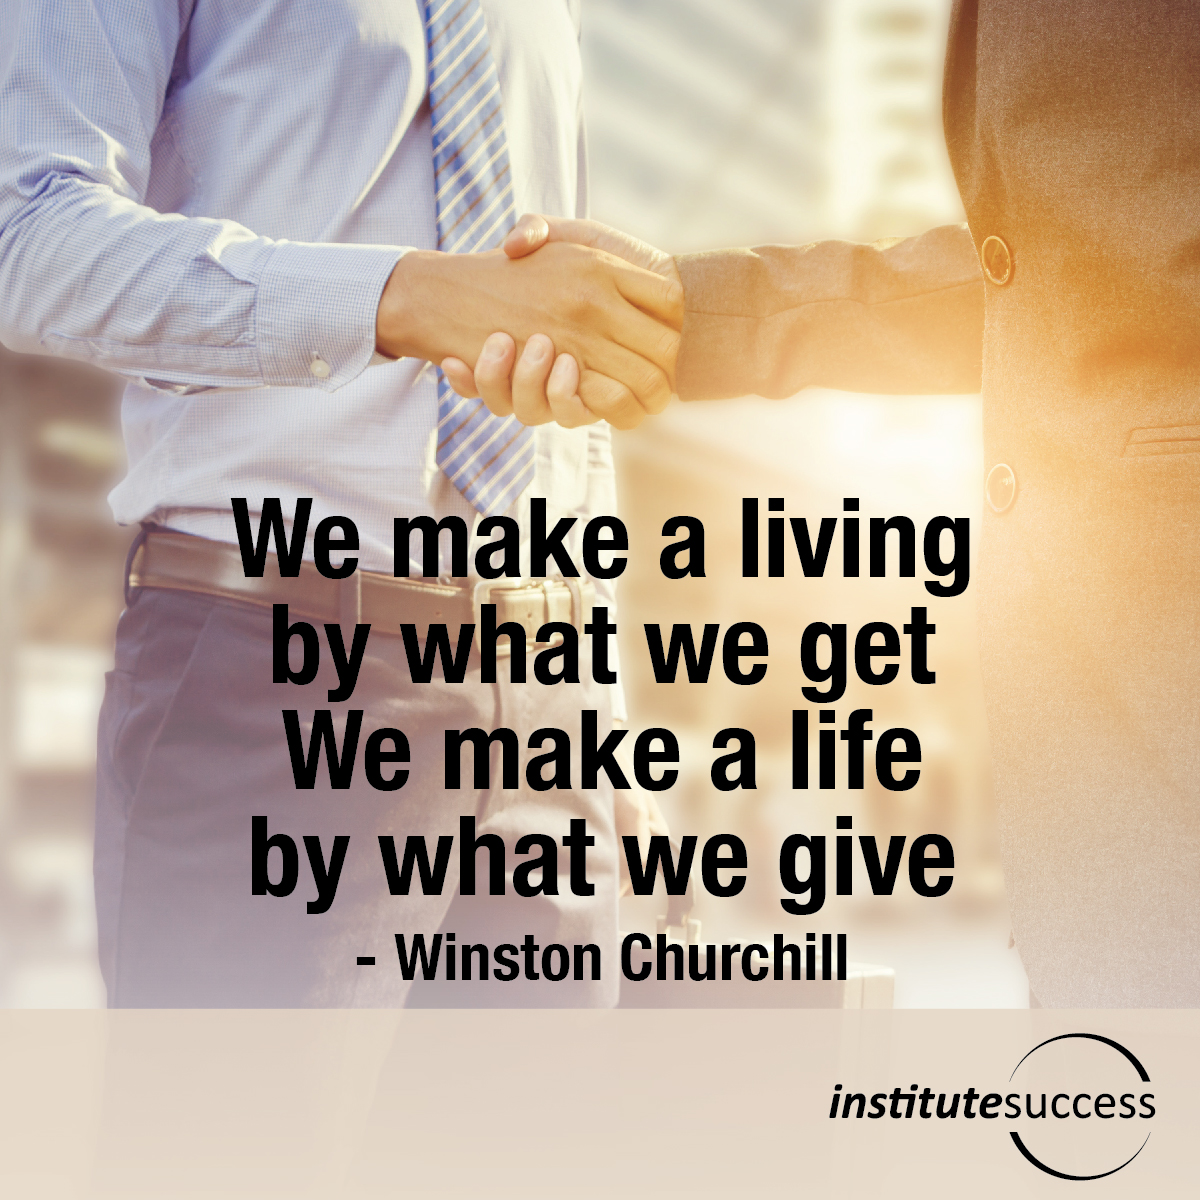 We make a living by what we get. We make a life by what we give – Winston Churchill